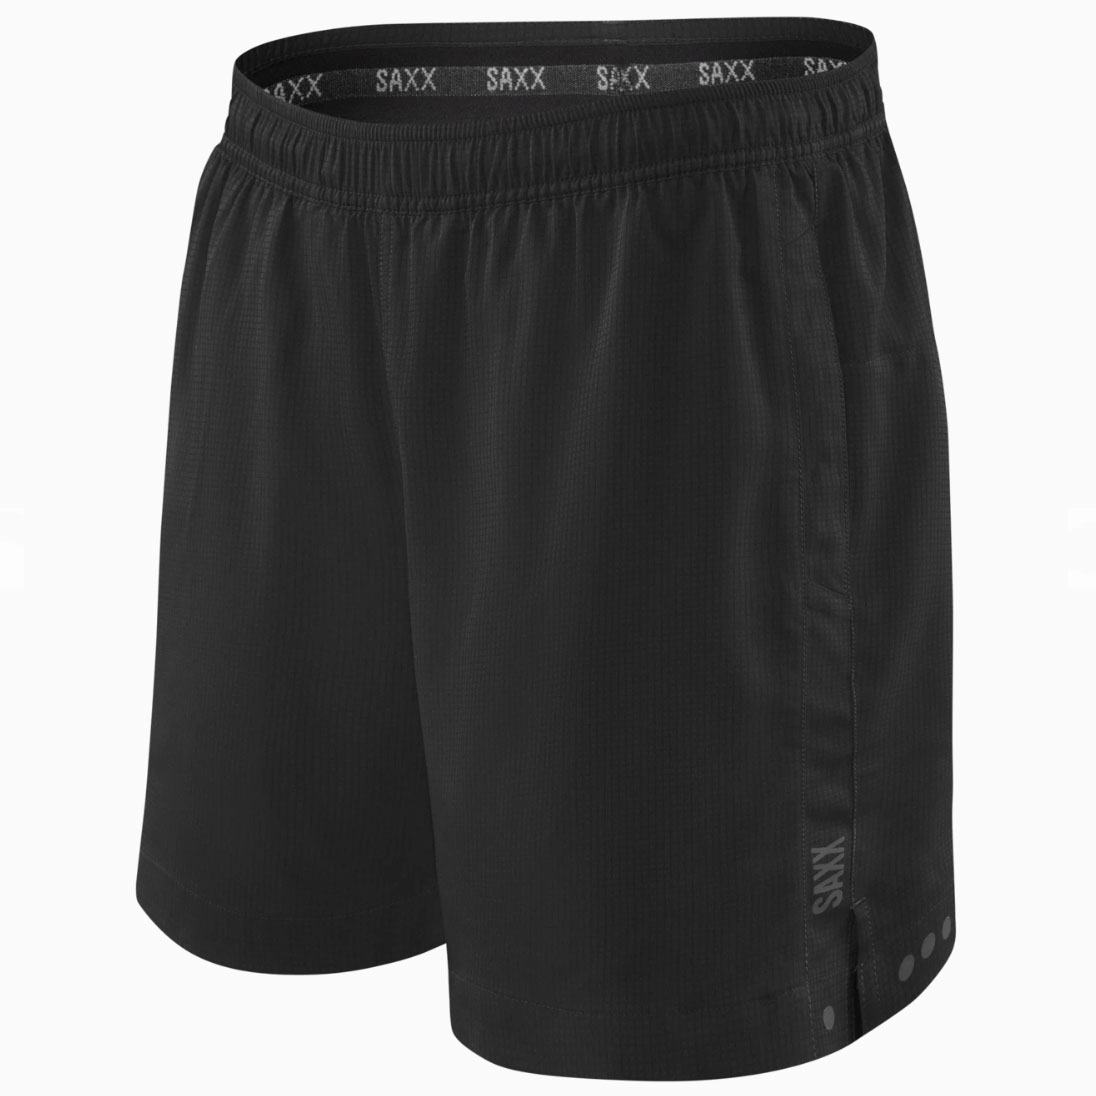 SAXX Kinetic Sport Shorts, best water shorts for men